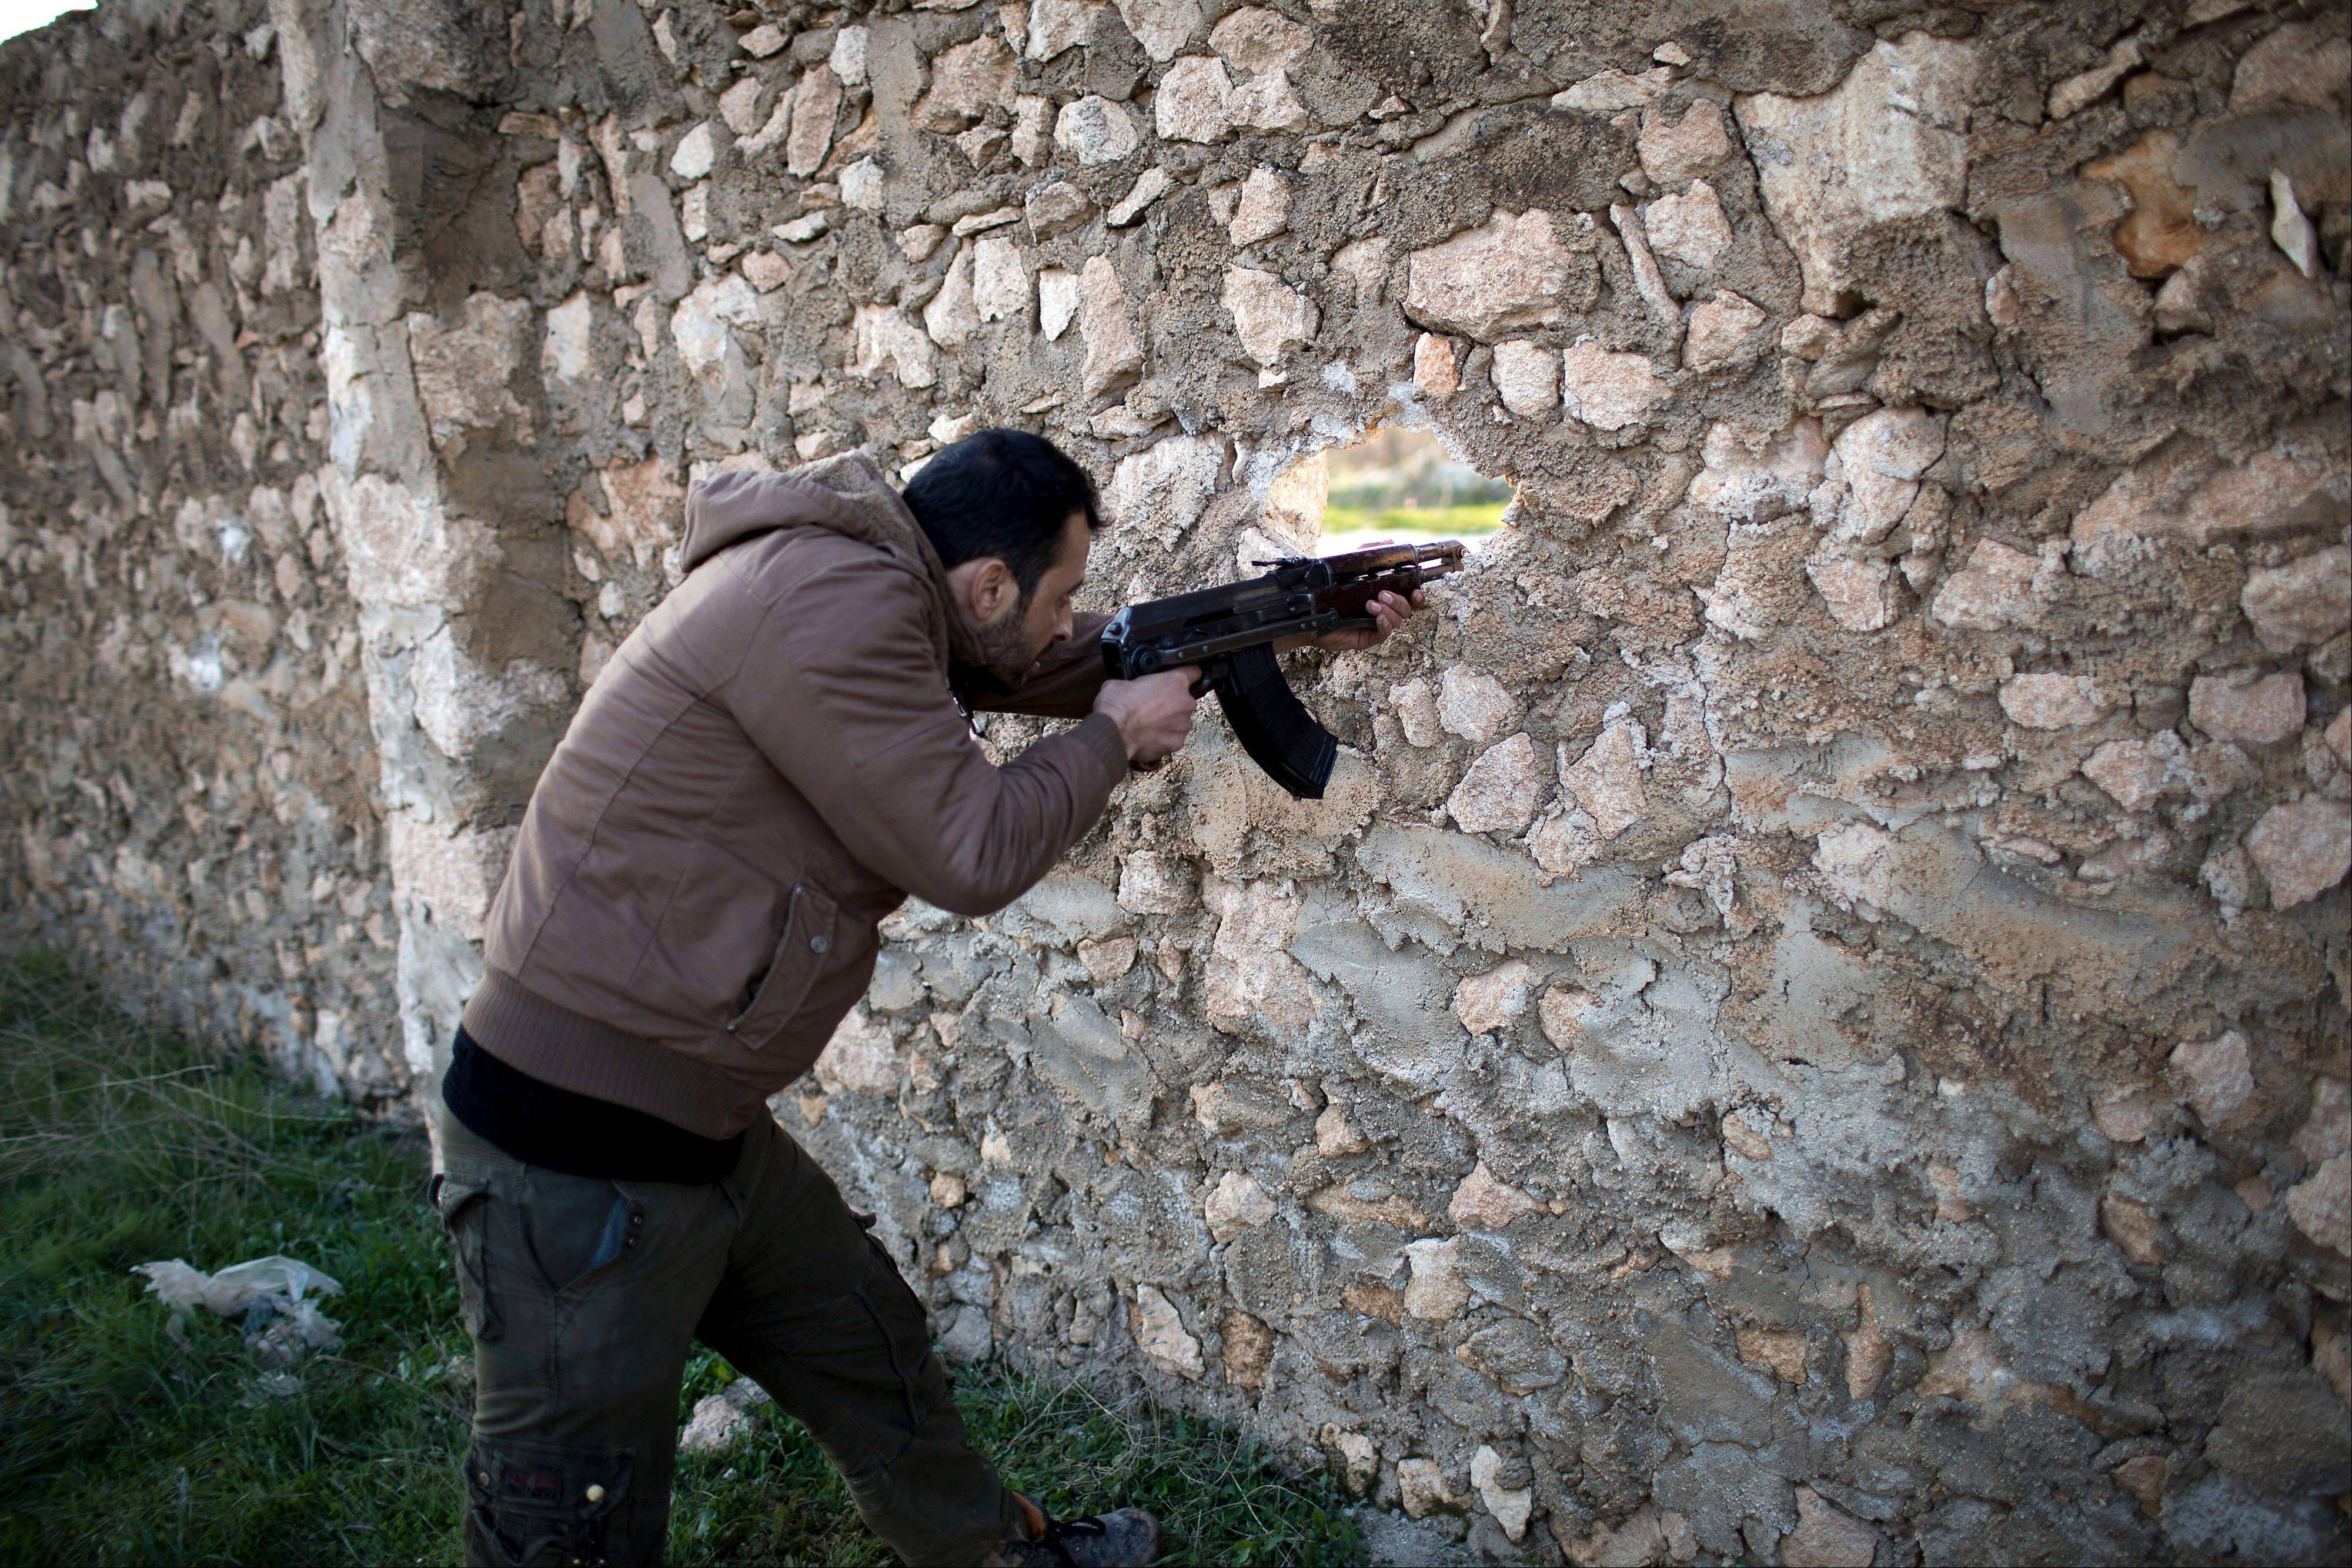 A Free Syrian Army fighter fires at Syrian Army positions Friday in Tal Sheer, Aleppo province, Syria.